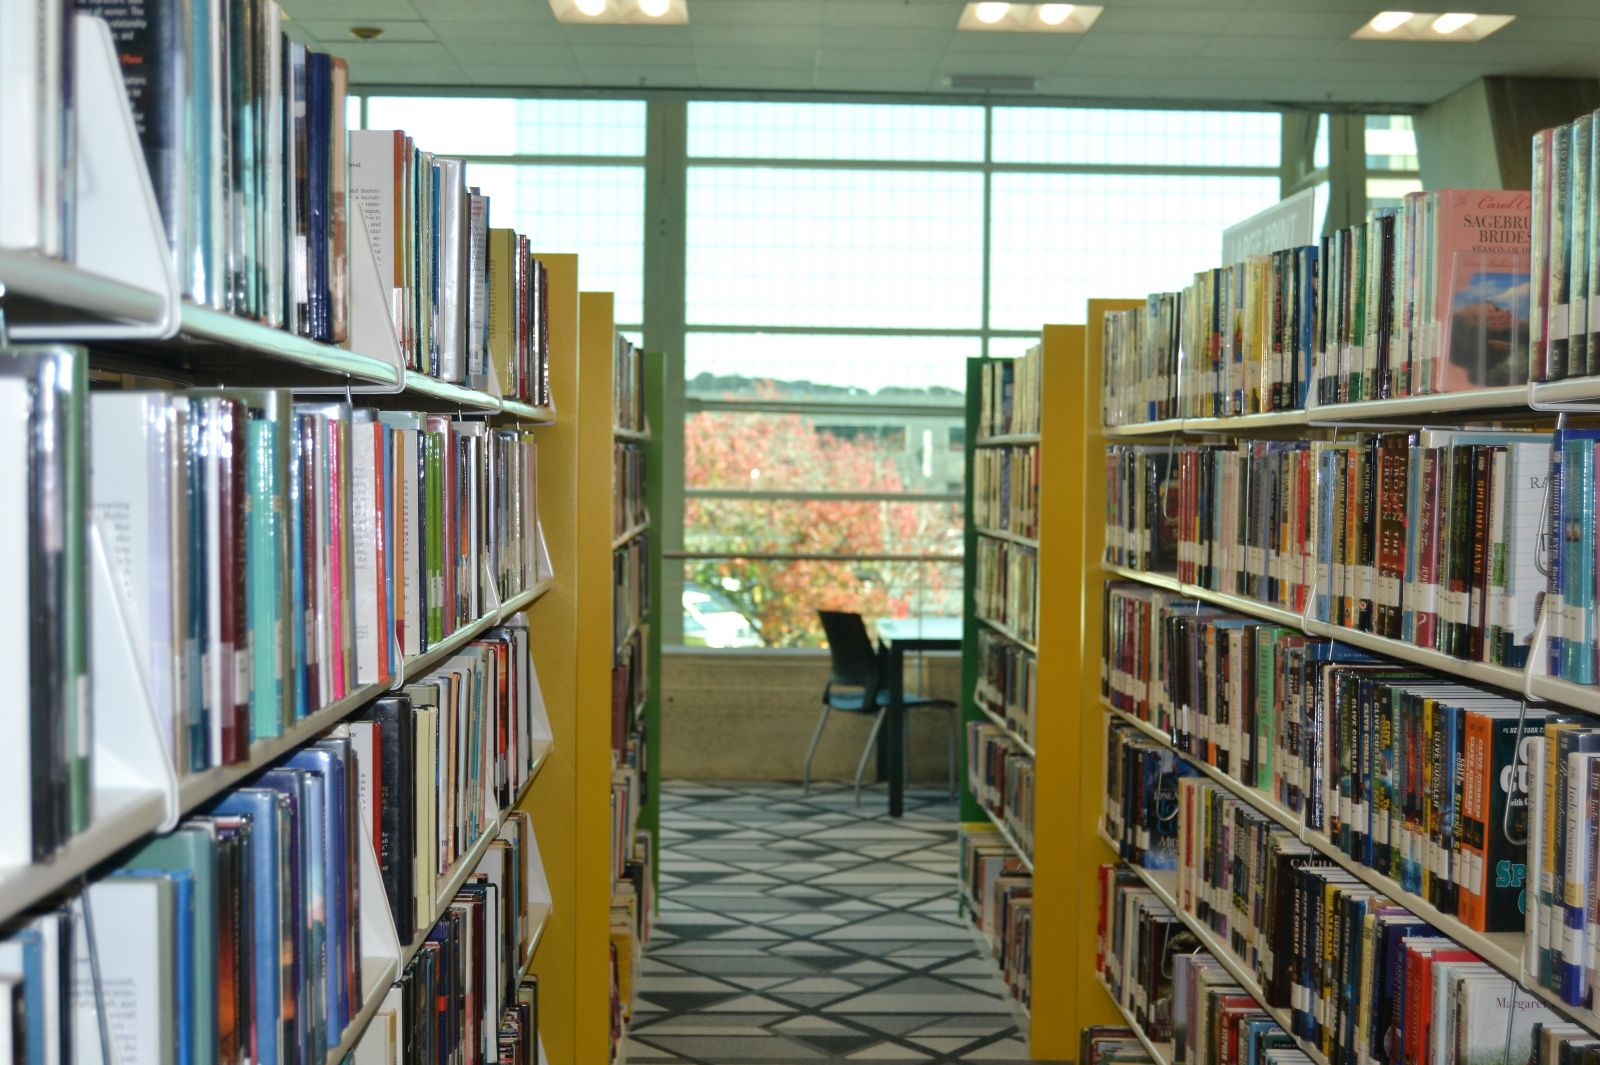 Among the changes made during renovations, stacks of books were moved back to give people more access to the view from the library's windows. (Photo/Melinda Waldrop)